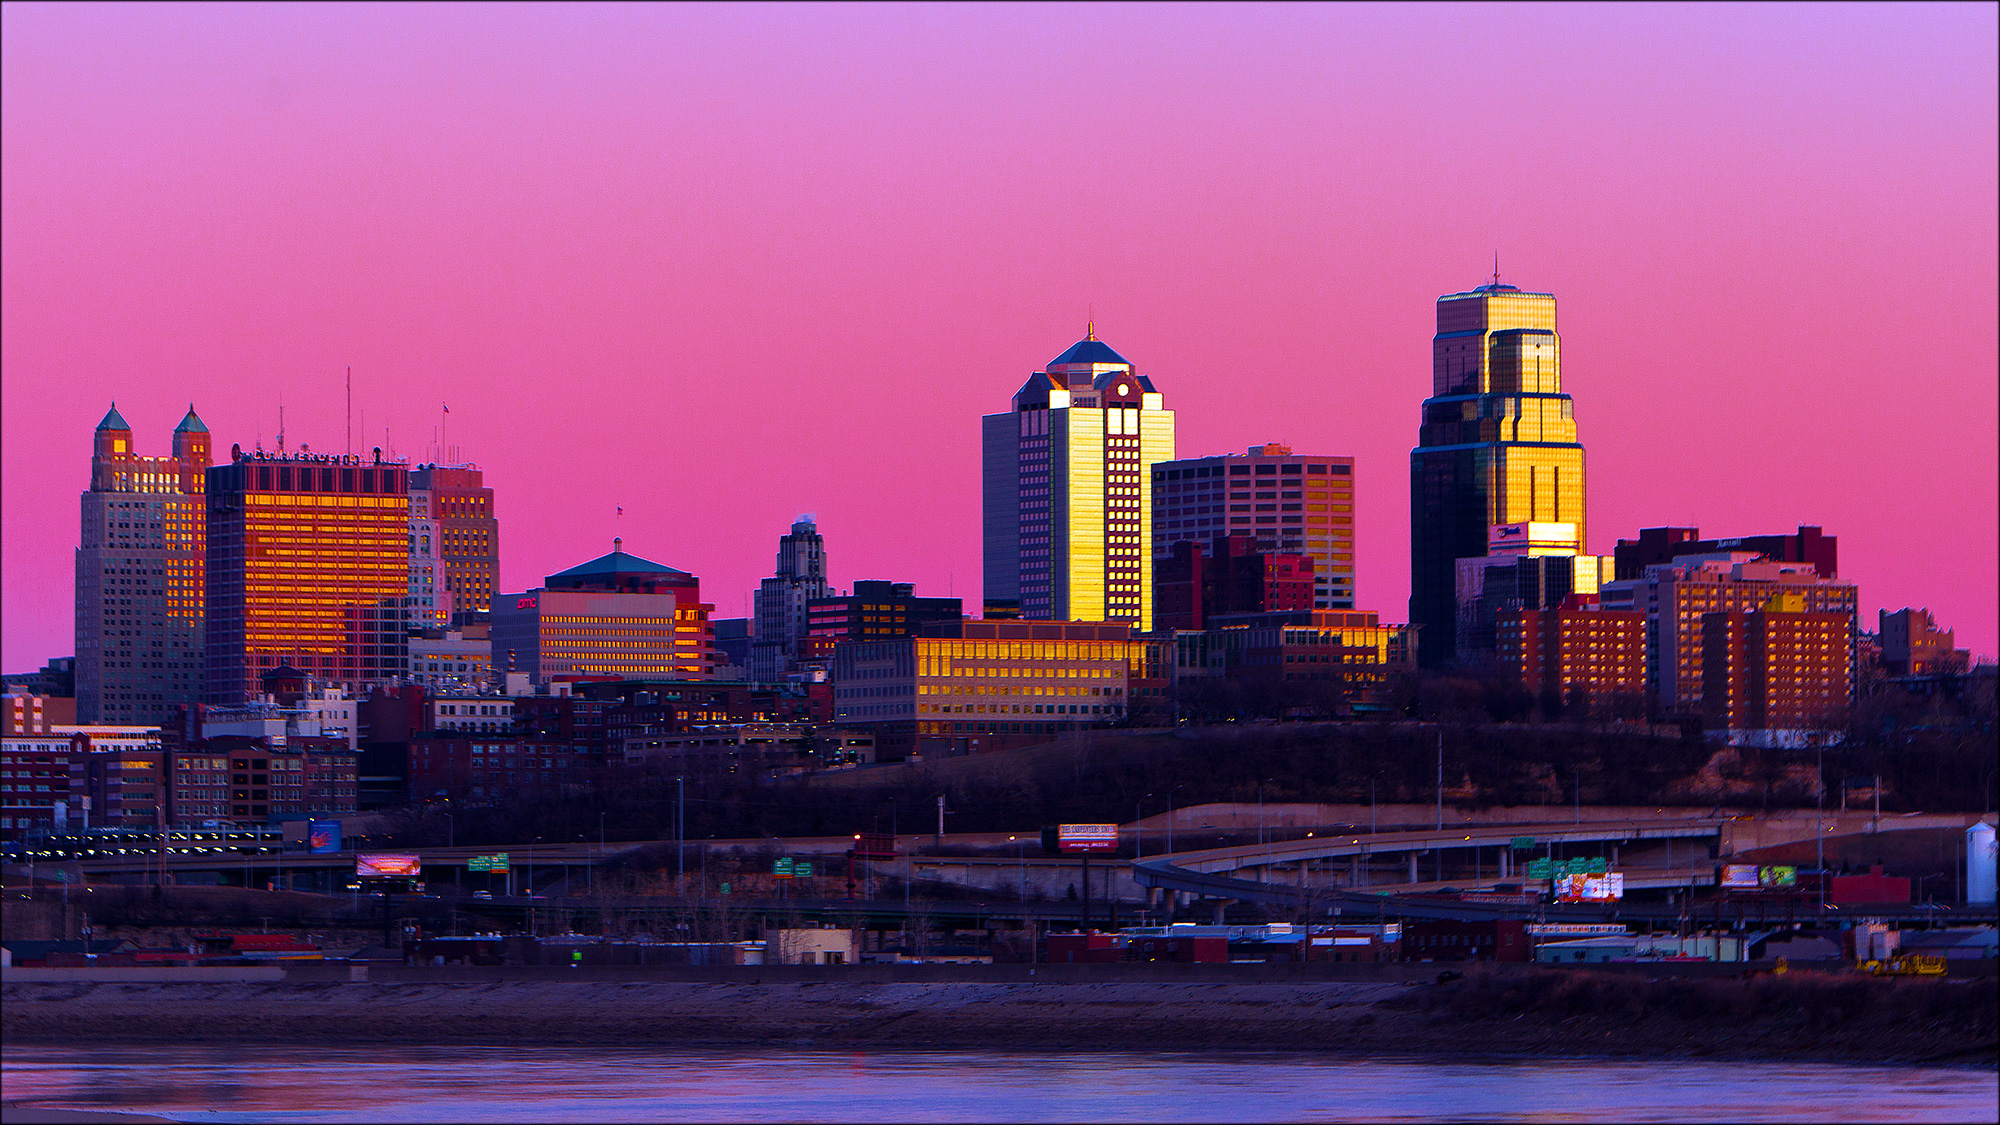 File:Kansas City At Dusk.jpg - Wikimedia Commons